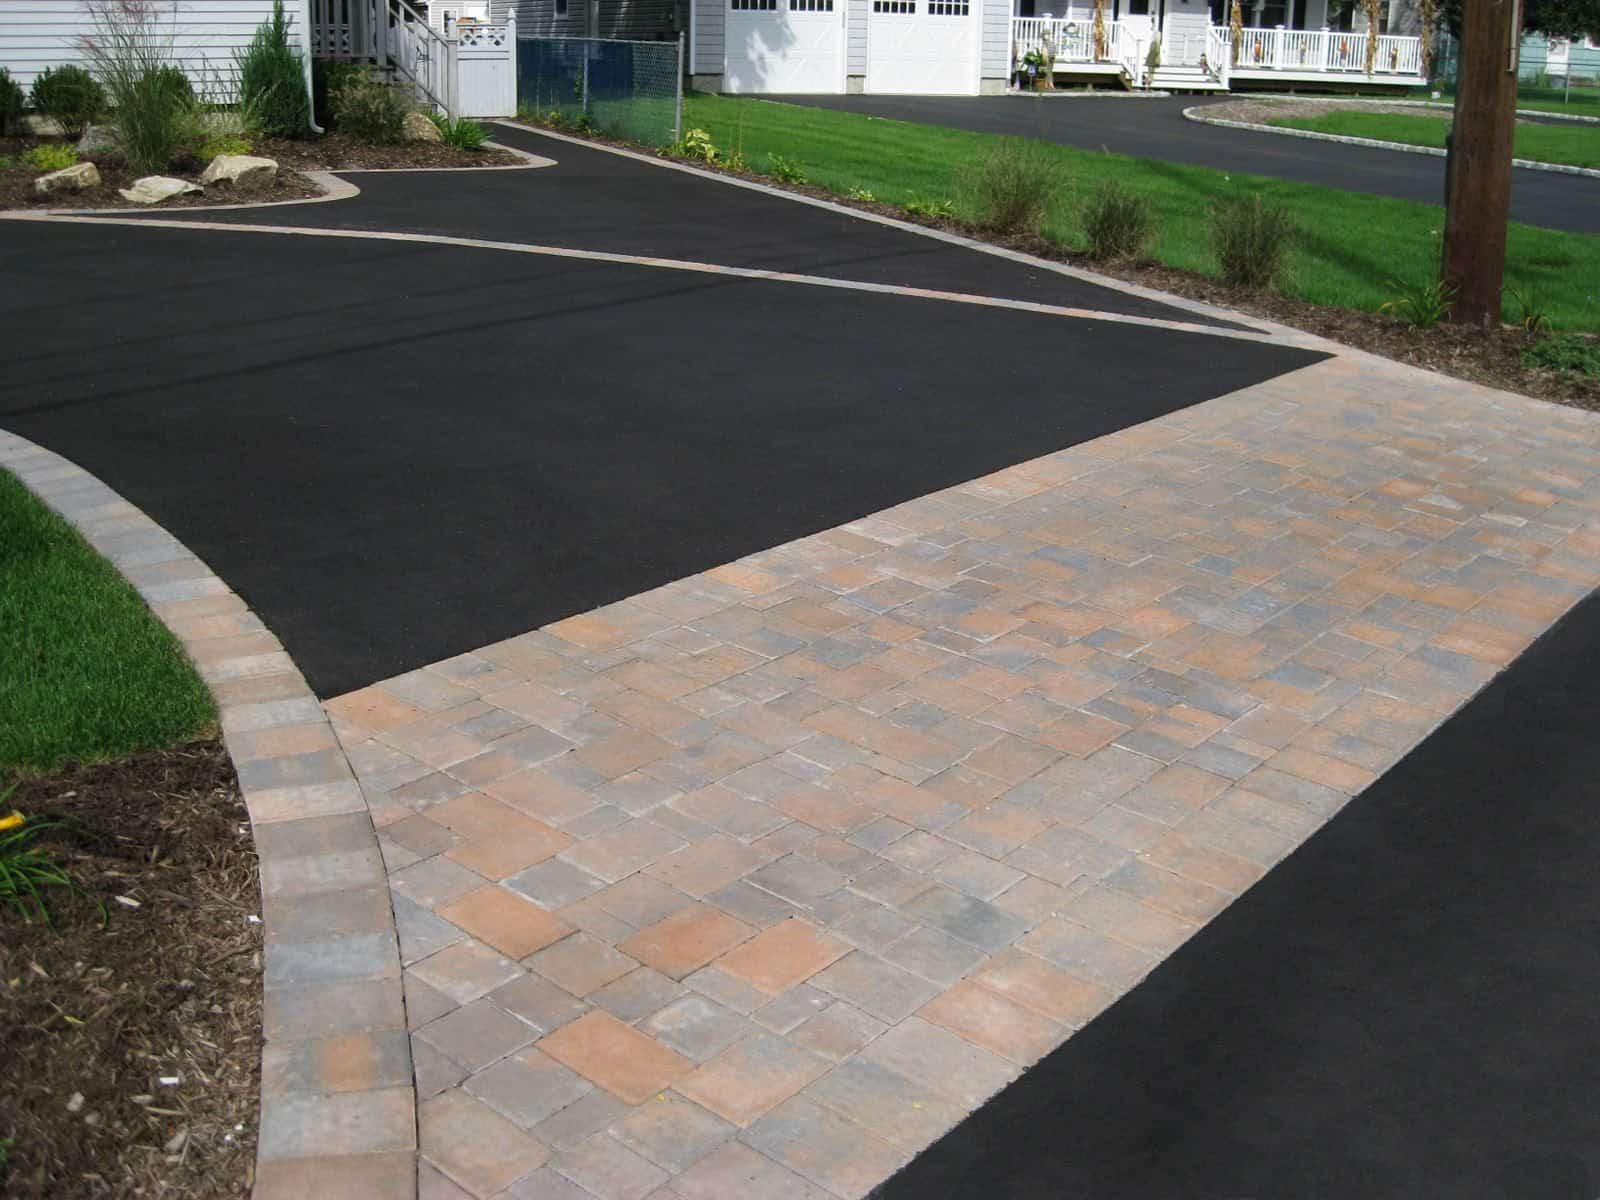 Asphalt Driveway - Cambridge Paver Apron and Inlays- Roundtable Collection - Color - Ruby Onyx - Dix Hills, Long Island NY